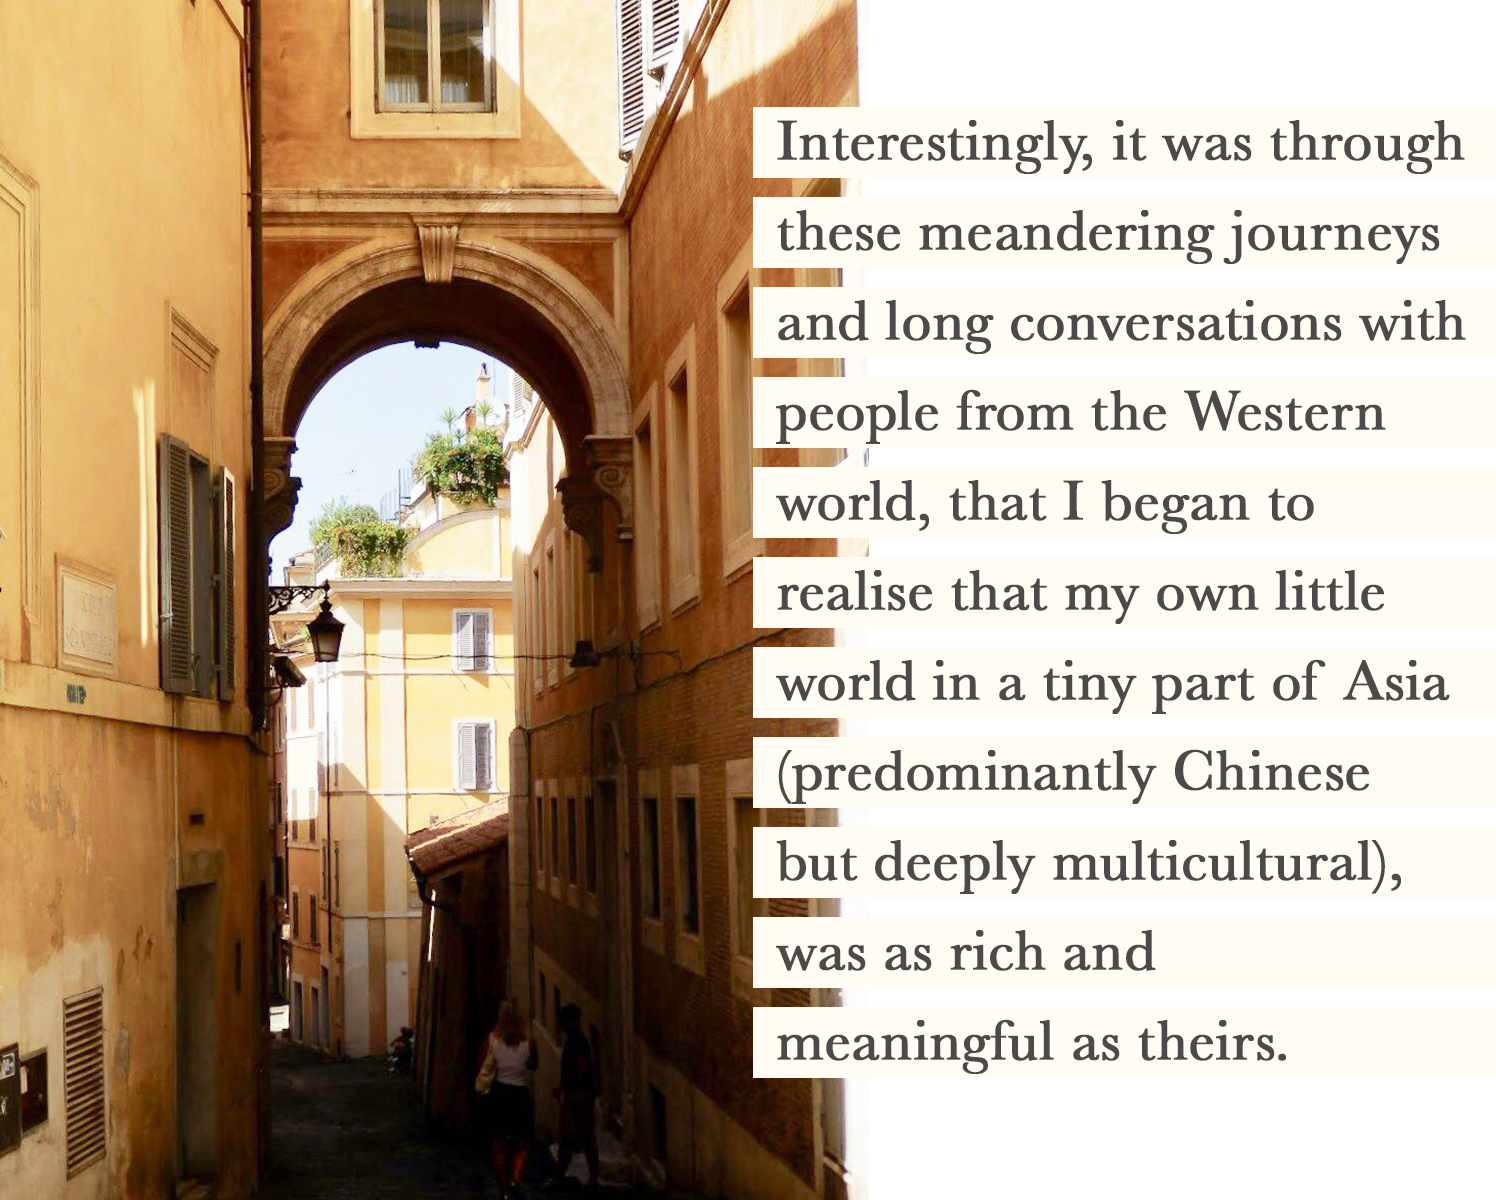 Interestingly, it was through these meandering journeys and long conversations with people from the Western world, that I began to realise that my own little world in a tiny part of Asia (predominantly Chinese but deeply multicultural), was as rich and meaningful as theirs. It came with the epiphany that it was merely my own prejudice, ignorance, and insecurities that had perceived my side of the world as inferior.